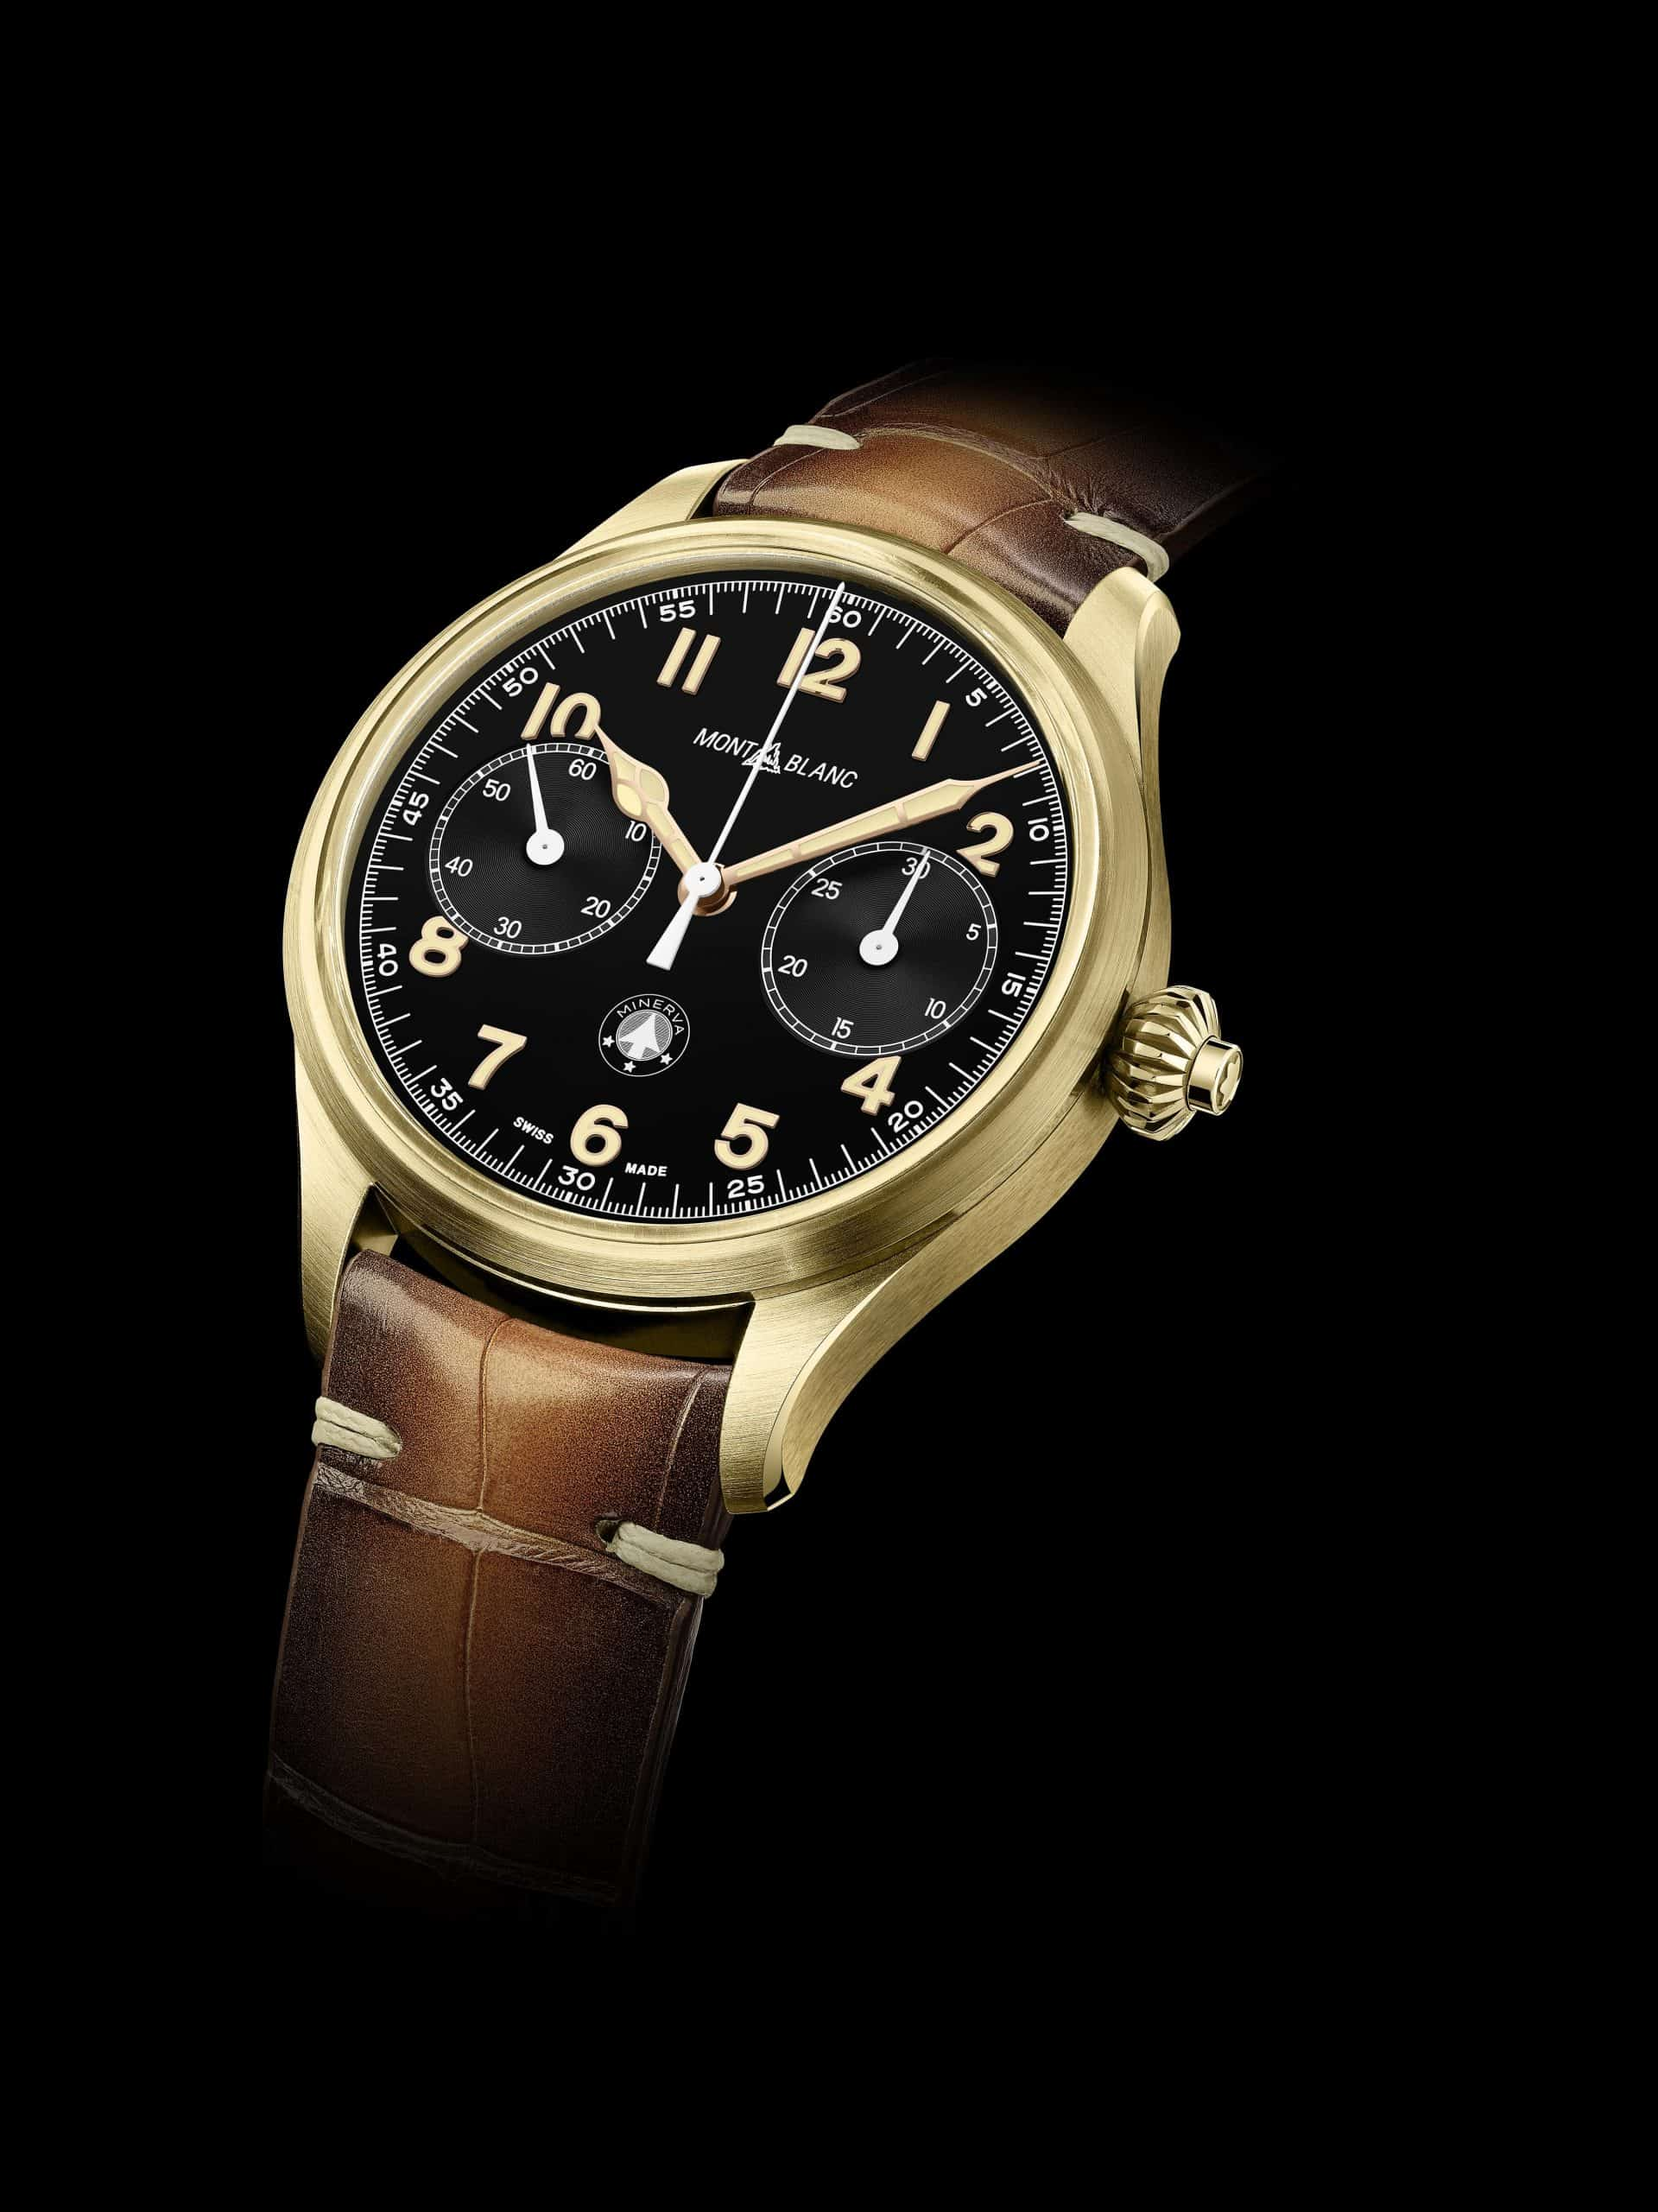 Montblanc 1858 Monopusher Chronograph Origins Limited Edition 100-min